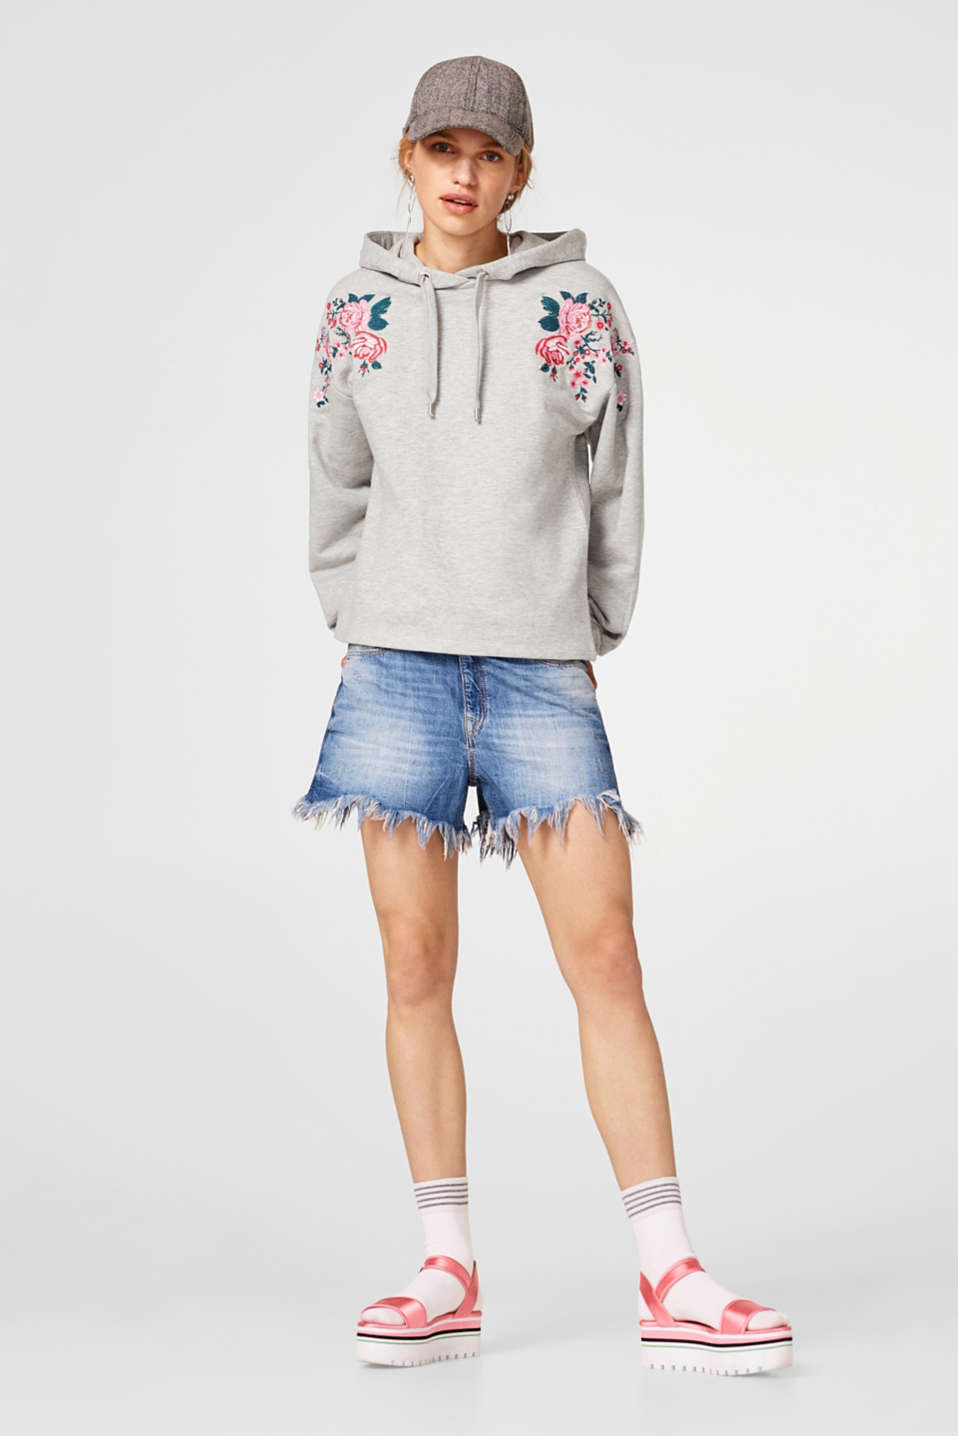 Hoodie with floral embroidery